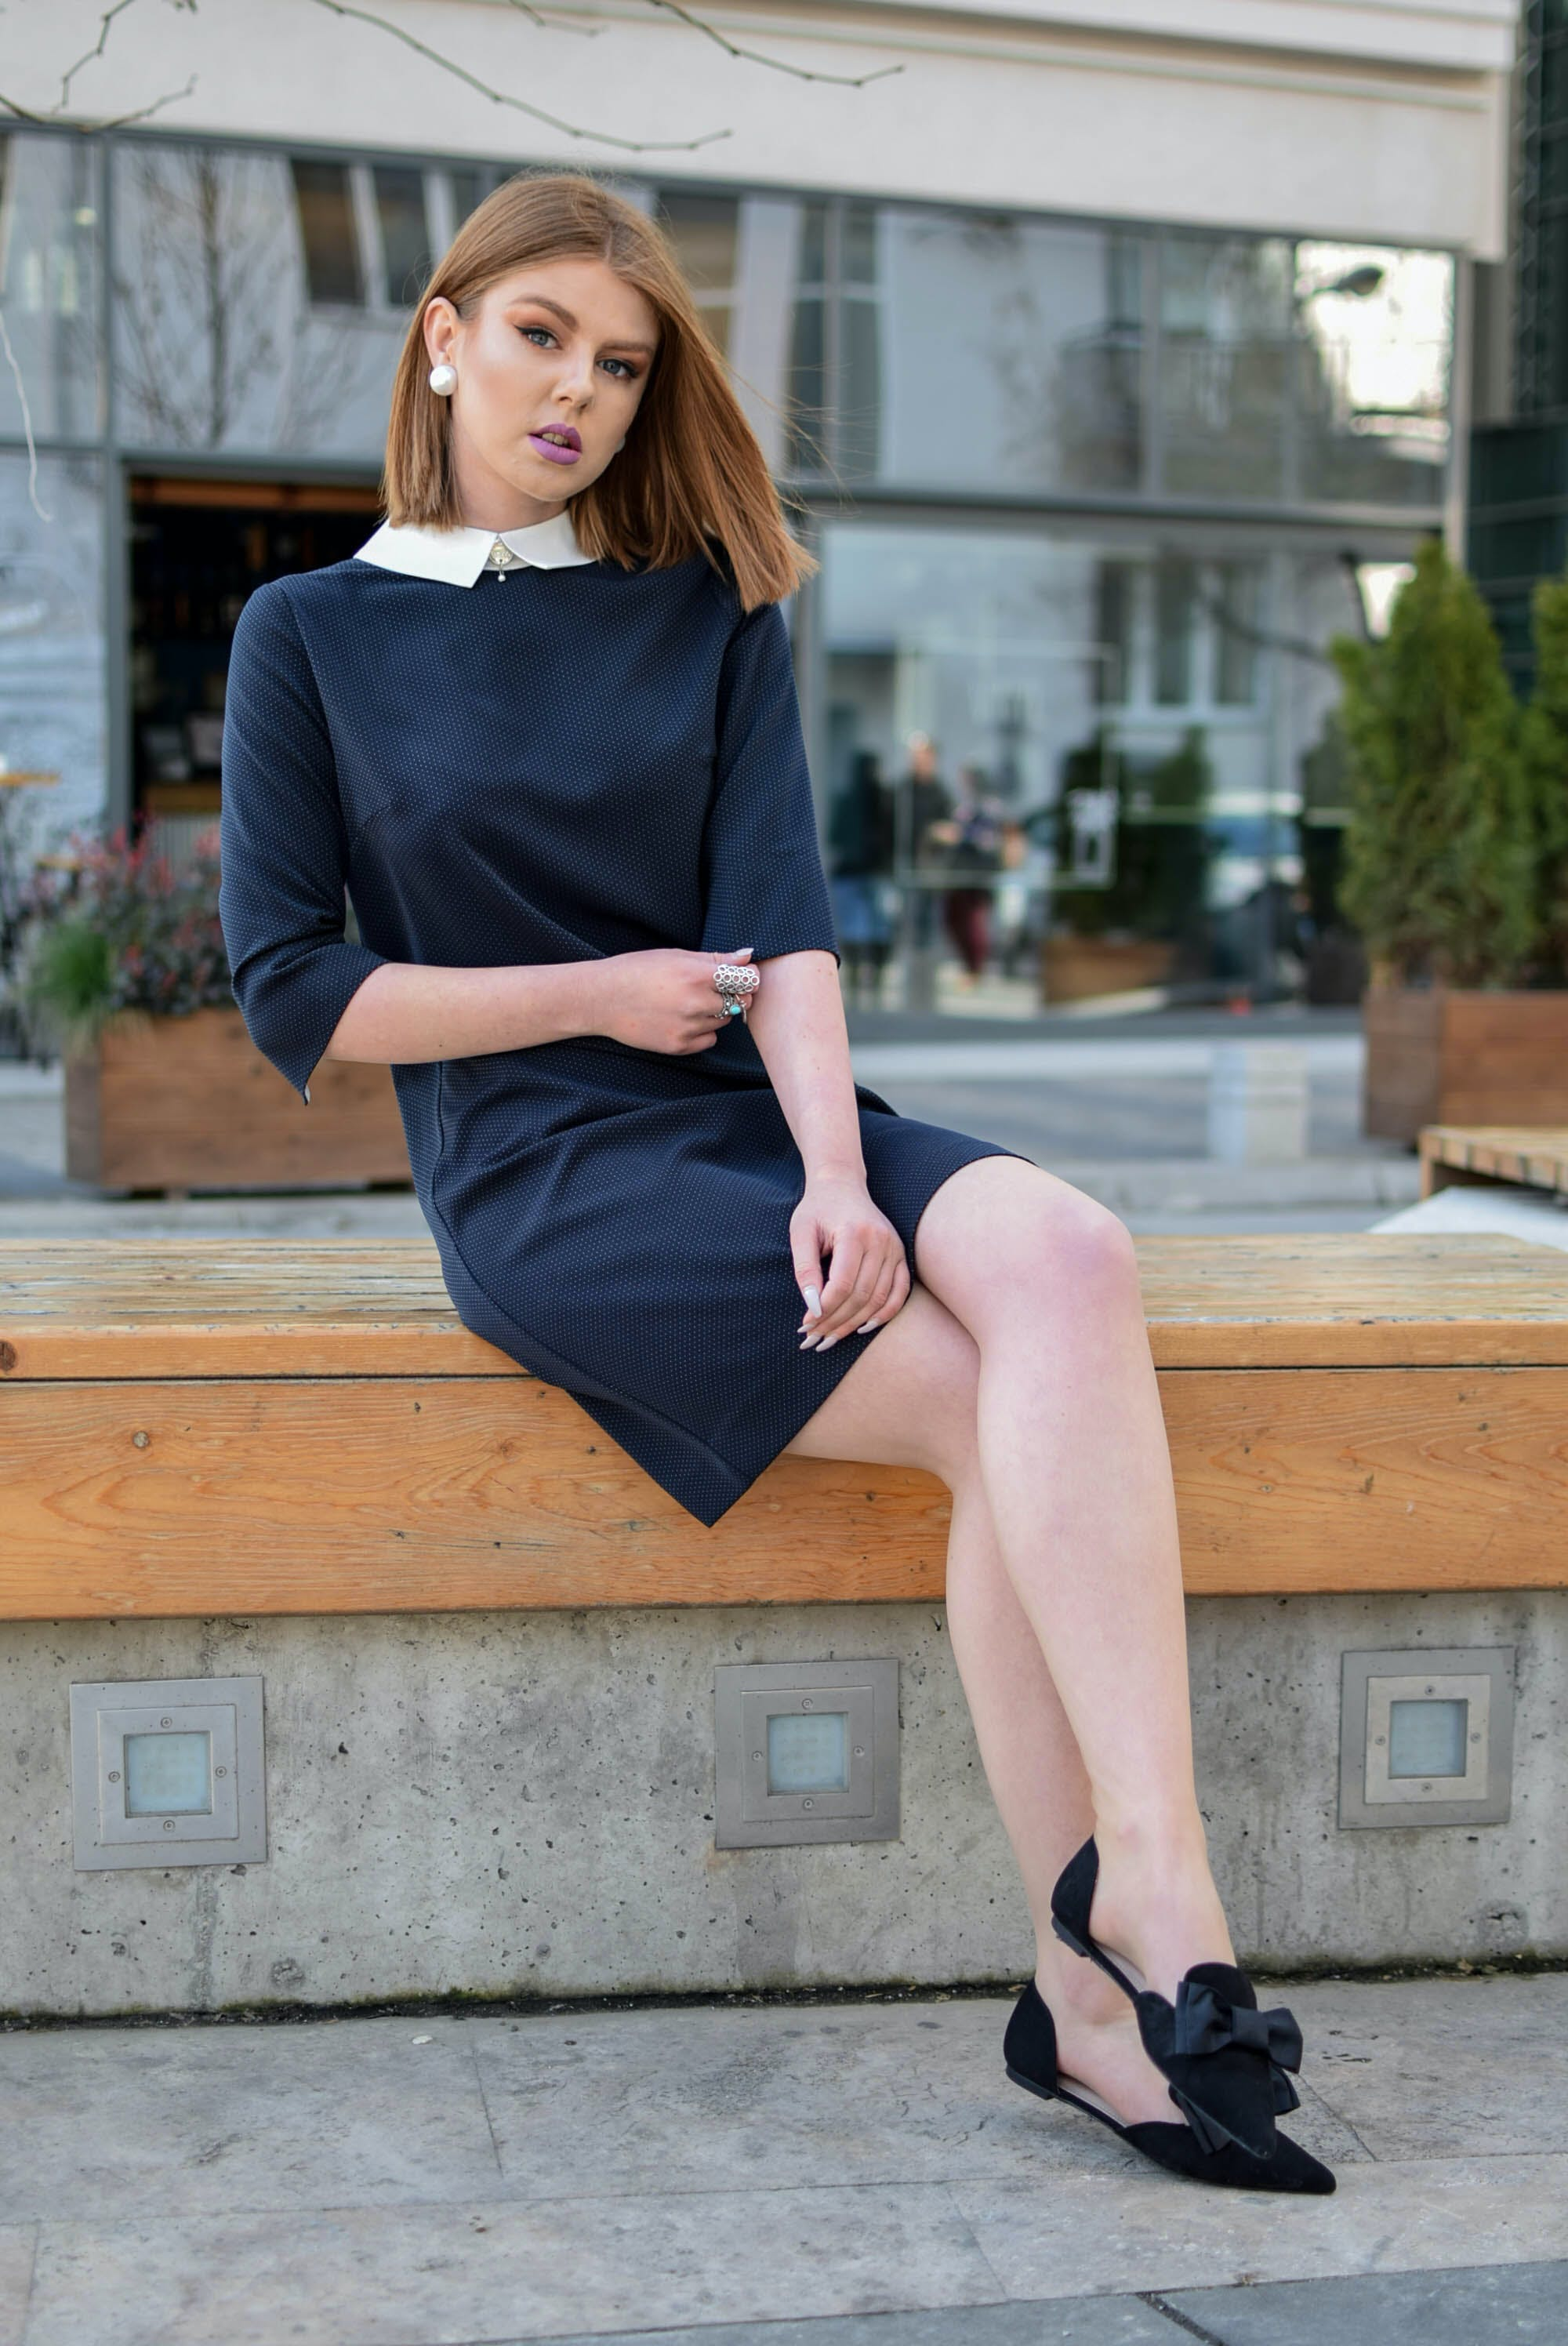 Photo of Woman Sitting on Bench